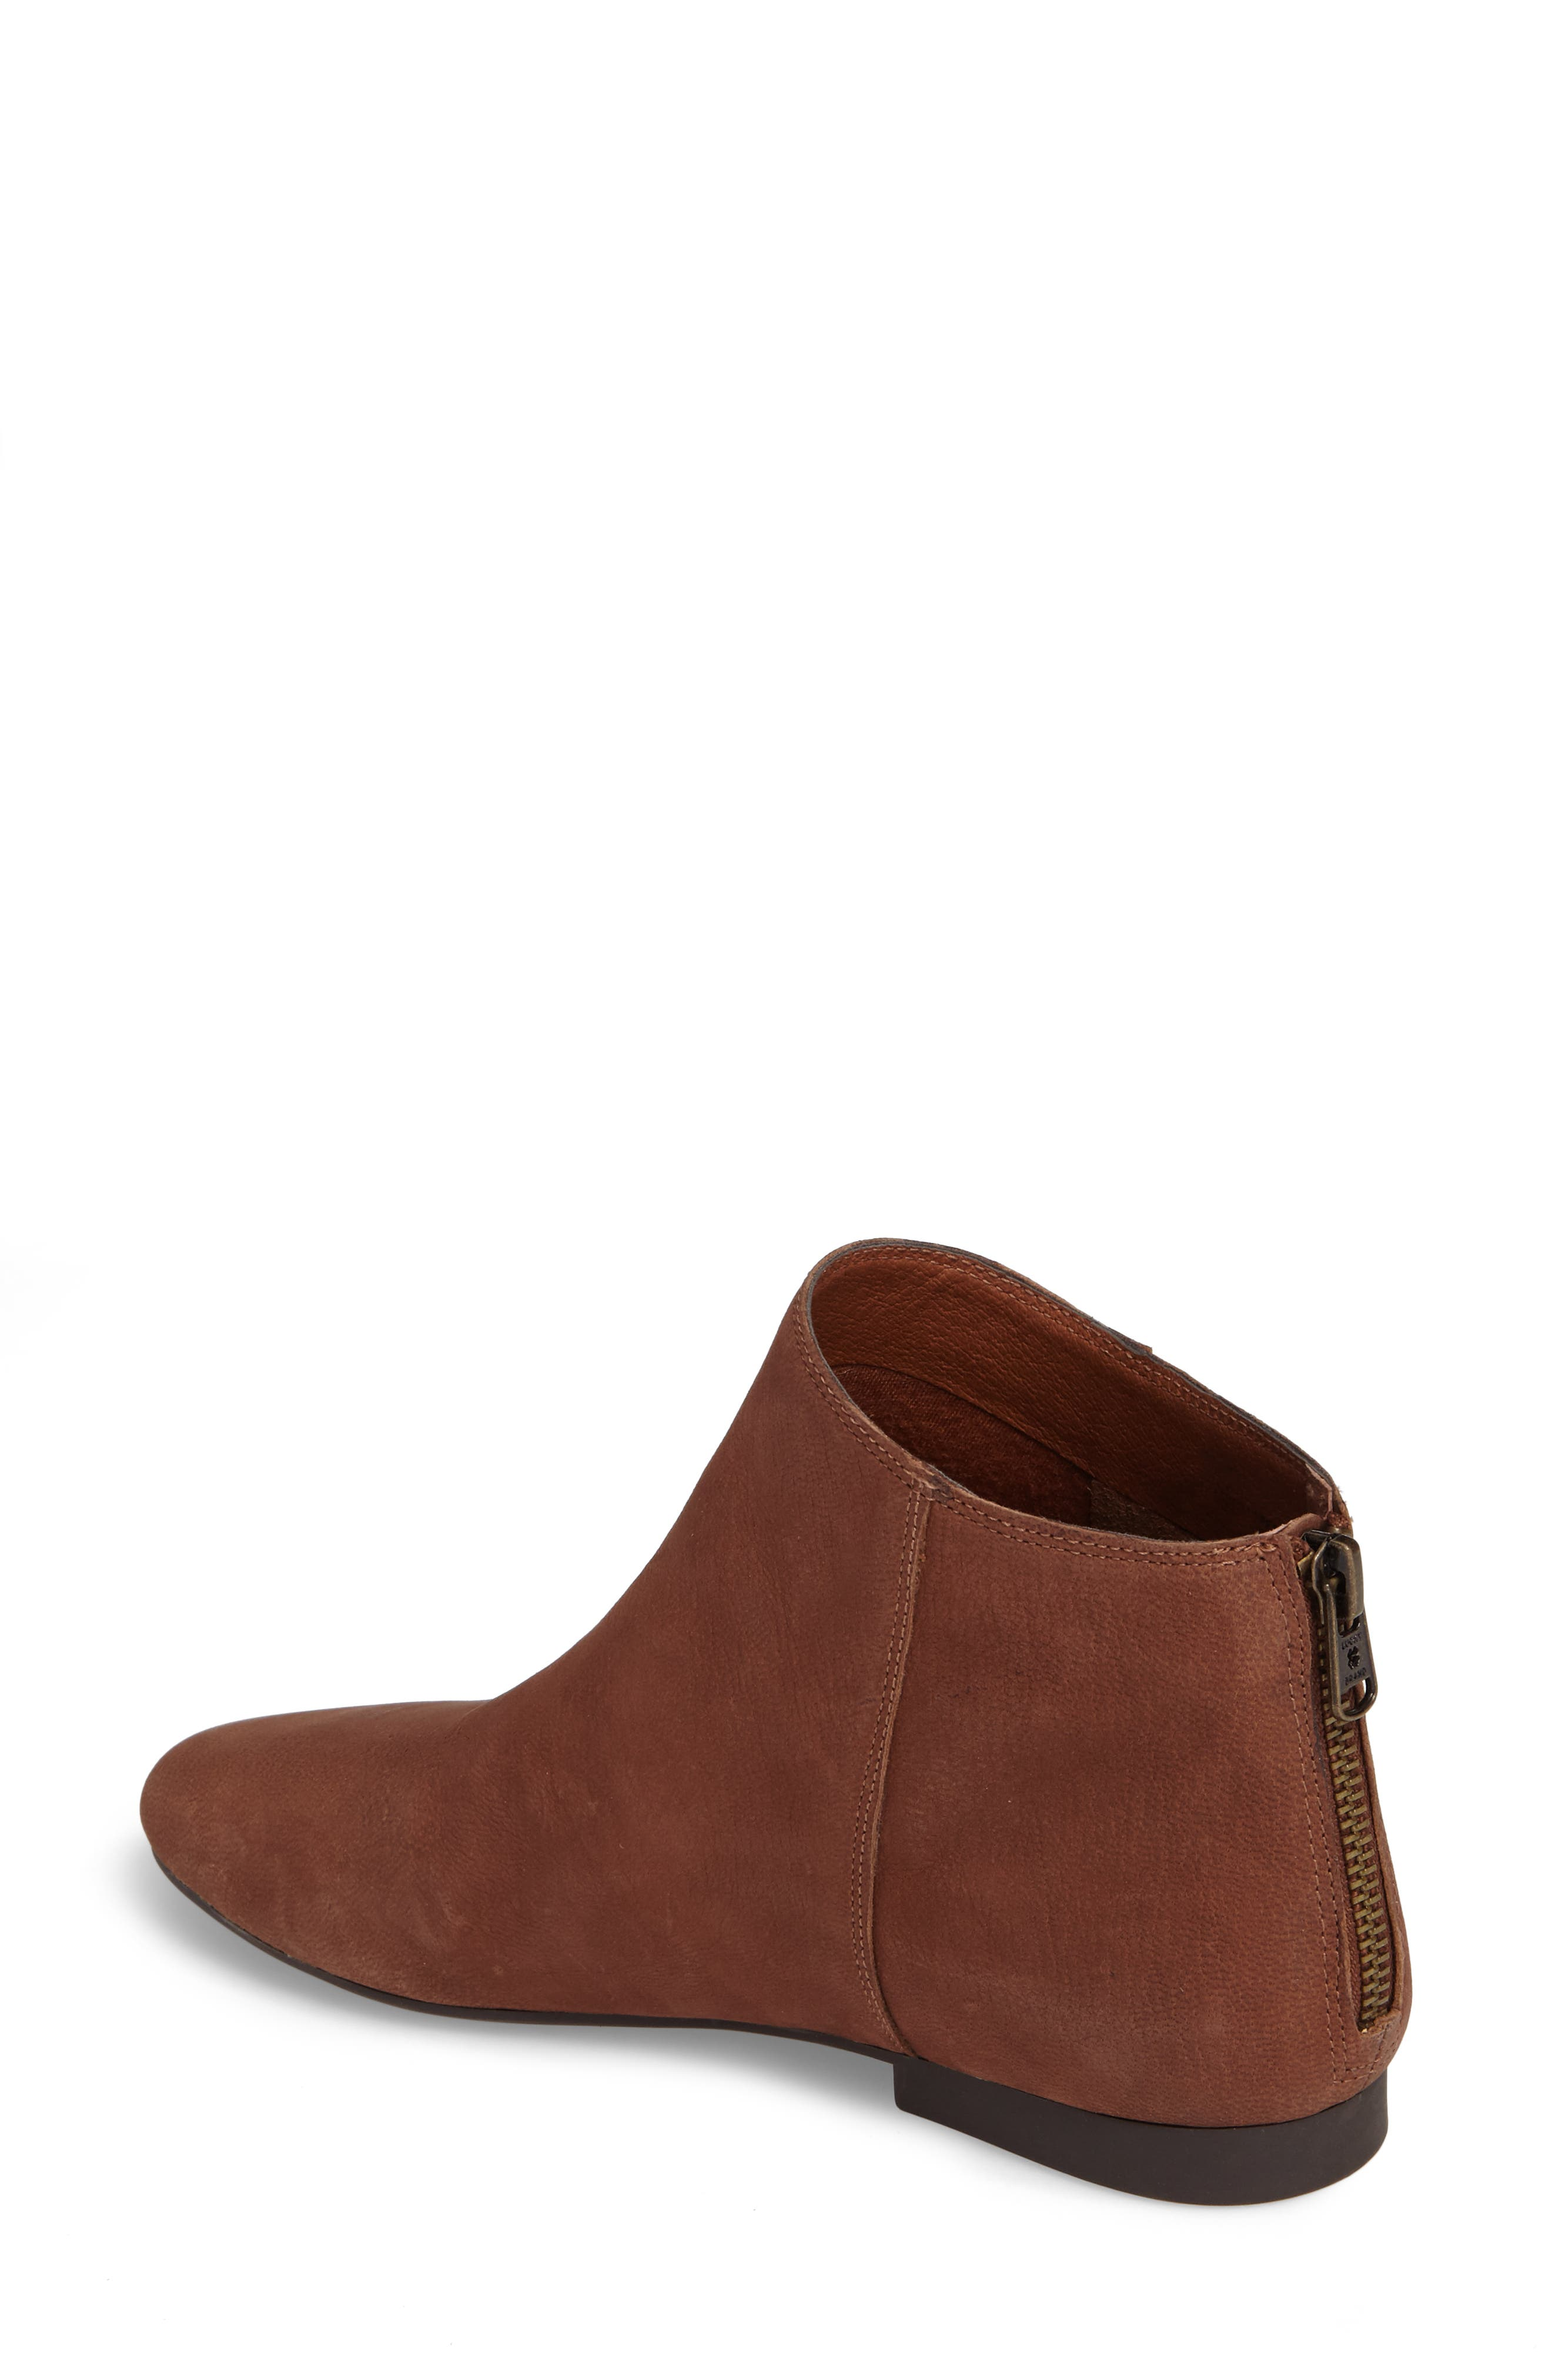 Gaines Bootie,                             Alternate thumbnail 2, color,                             Toffee Leather